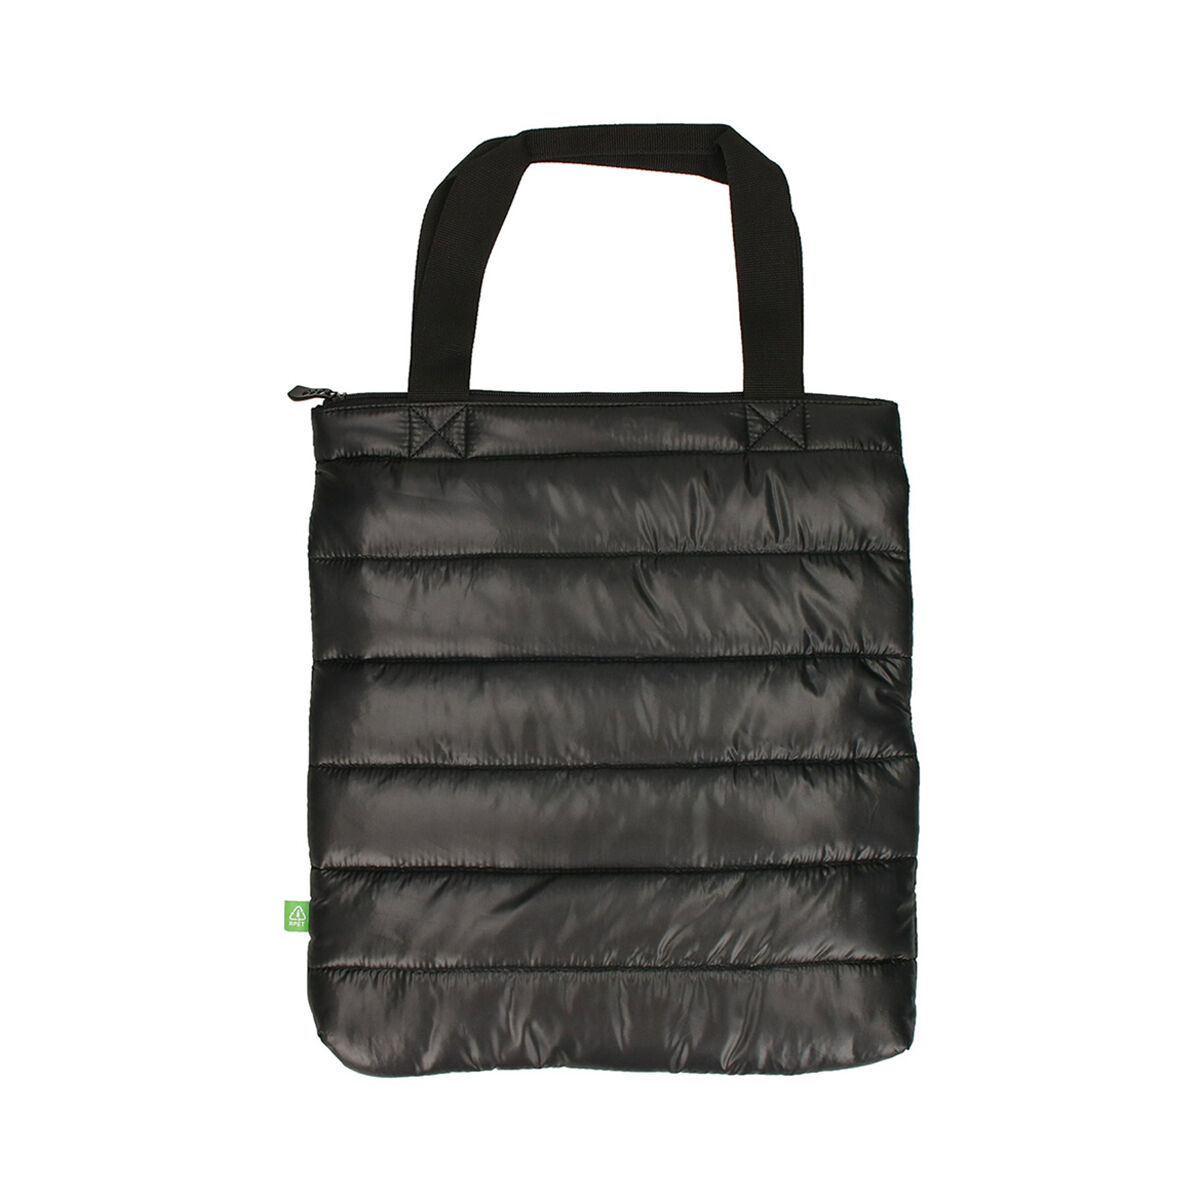 Recycled water bottle quilted shopping bag